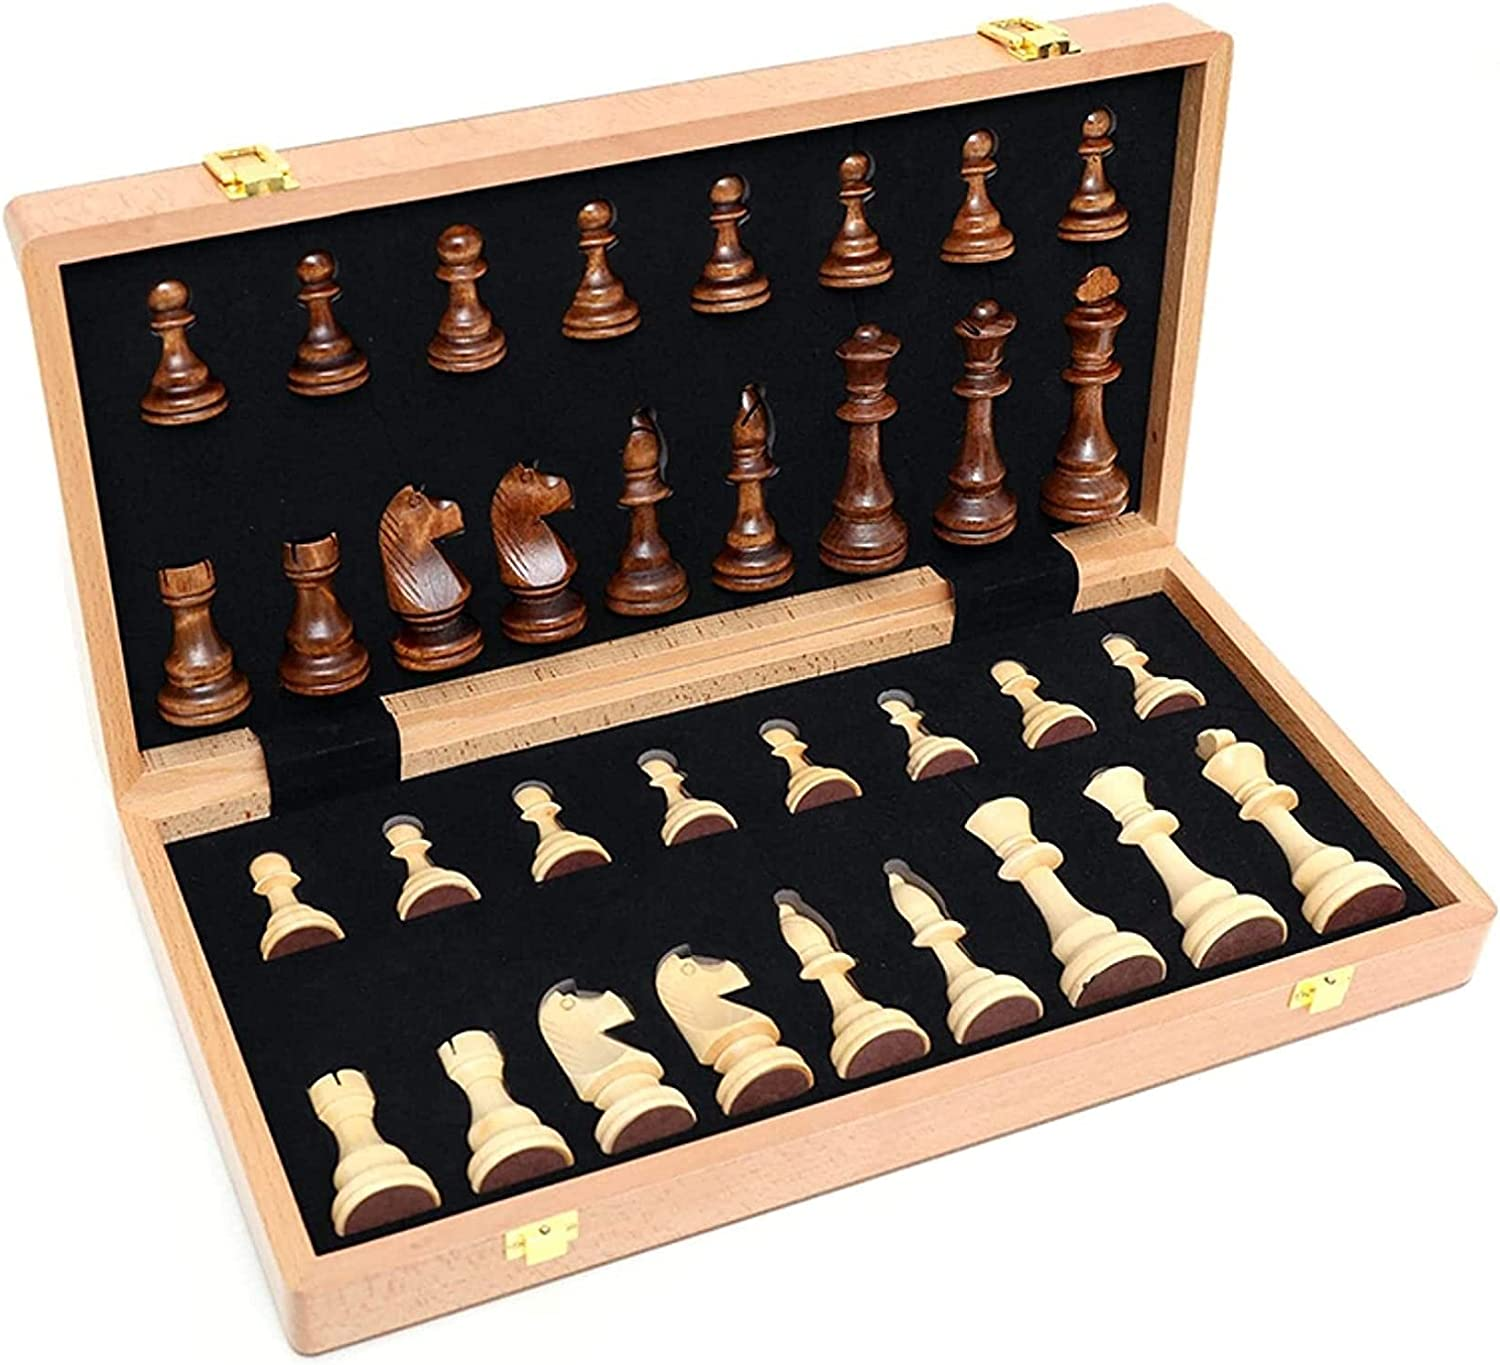 MTCWD Chess Luxury Set Magnetic Portable Board New Free Shipping Hand